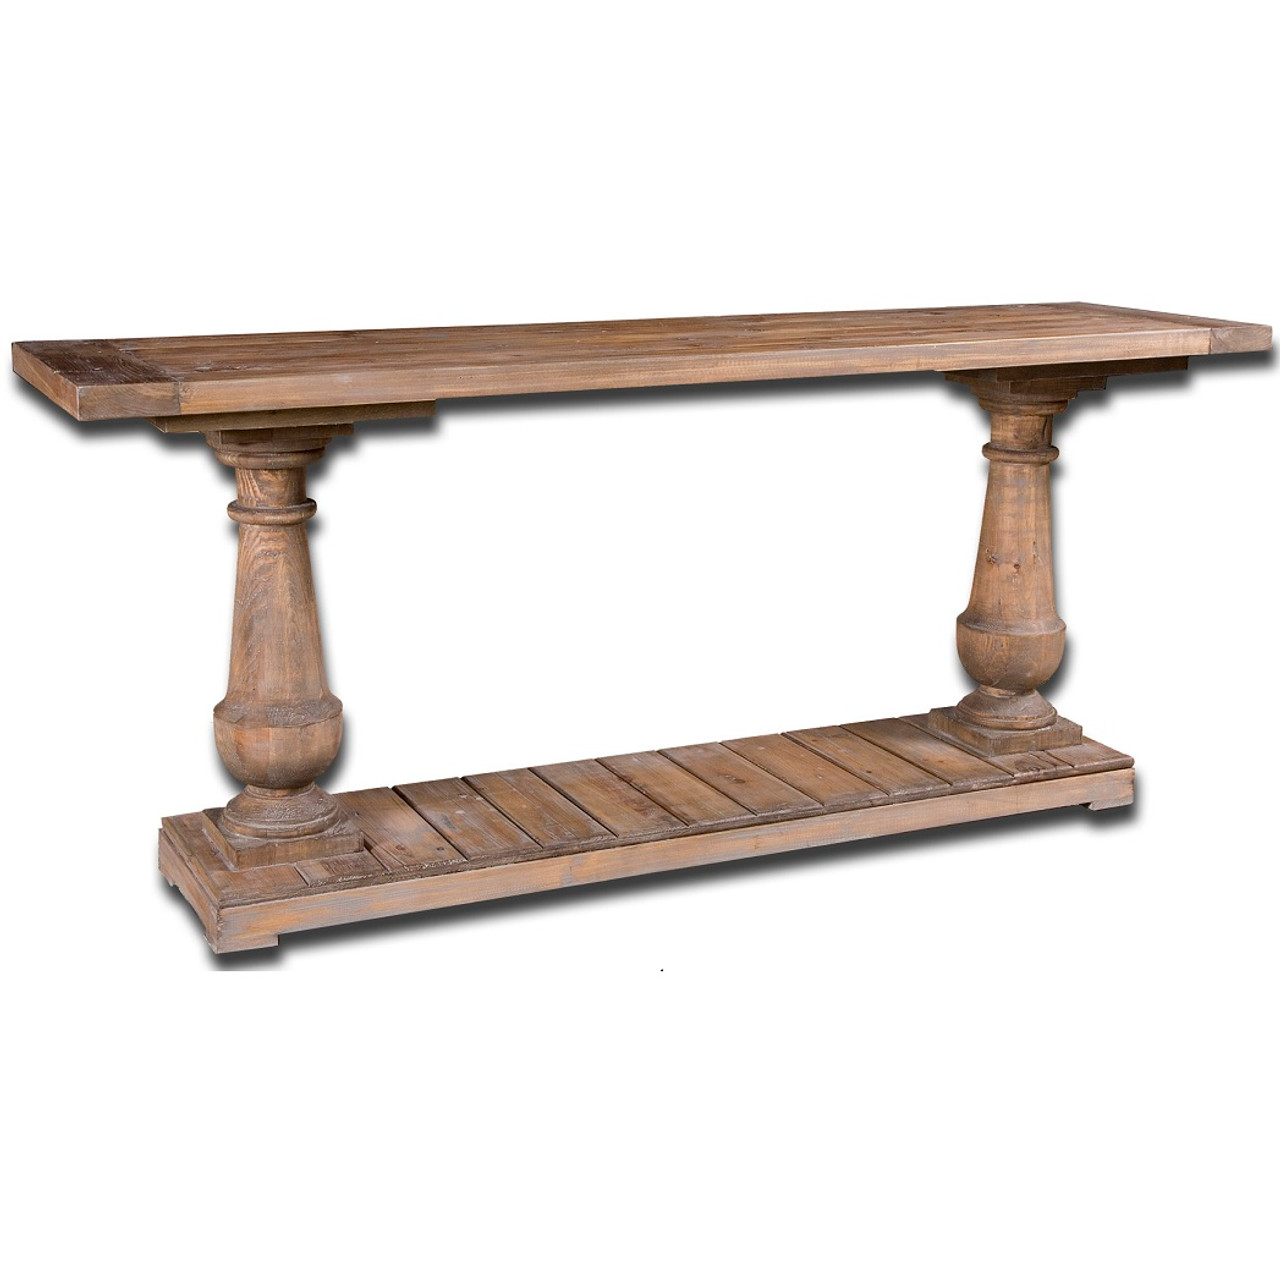 salvaged solid wood rustic console table 71"